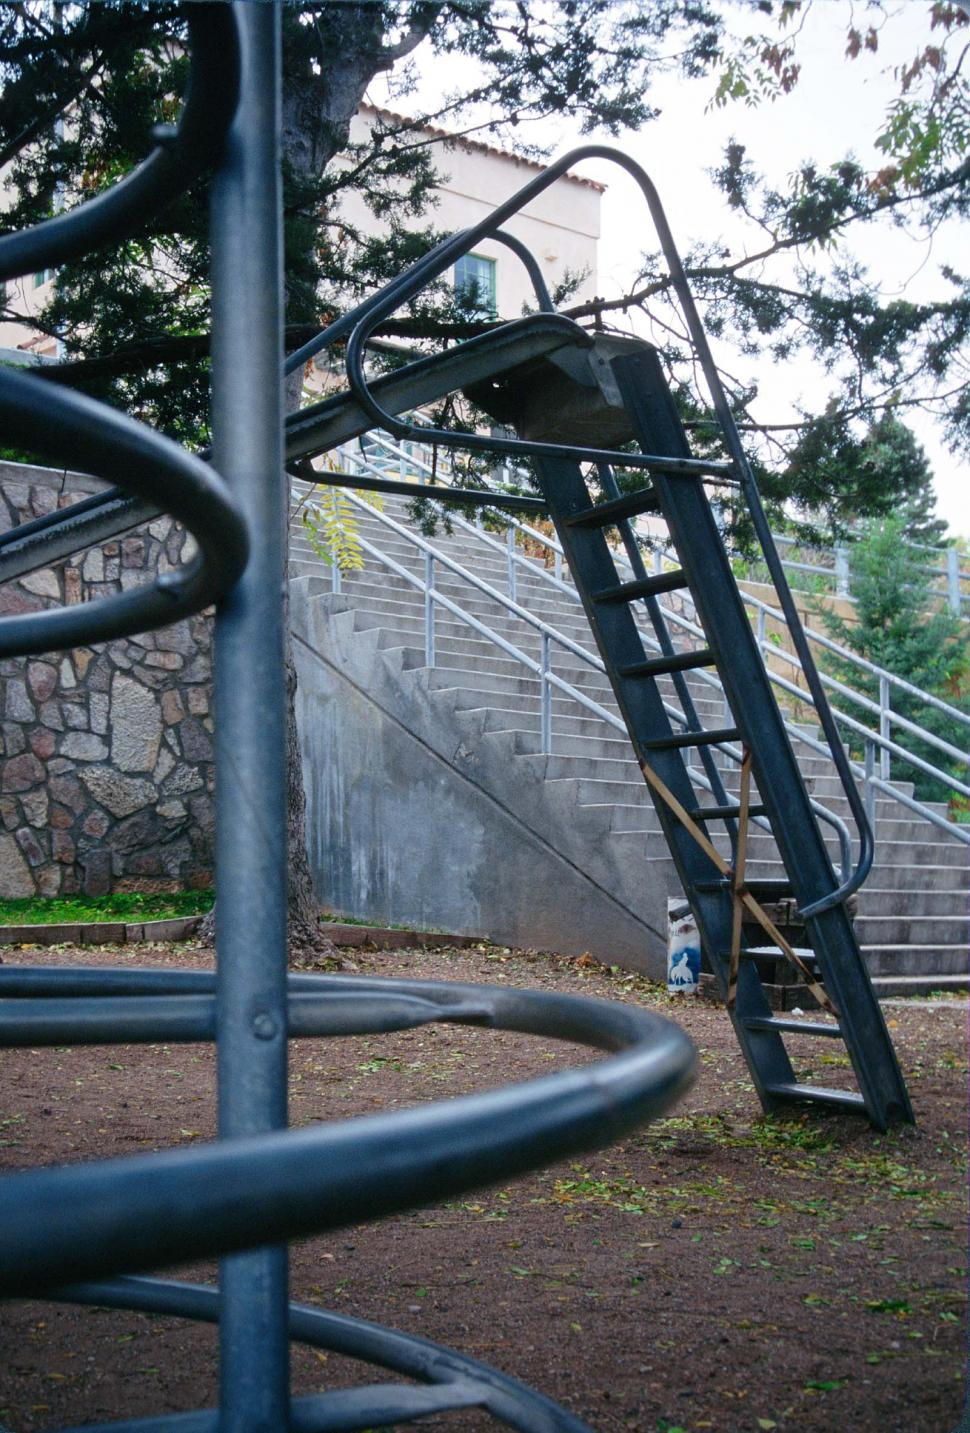 Download Free Stock HD Photo of Metal Playground Equipment Online